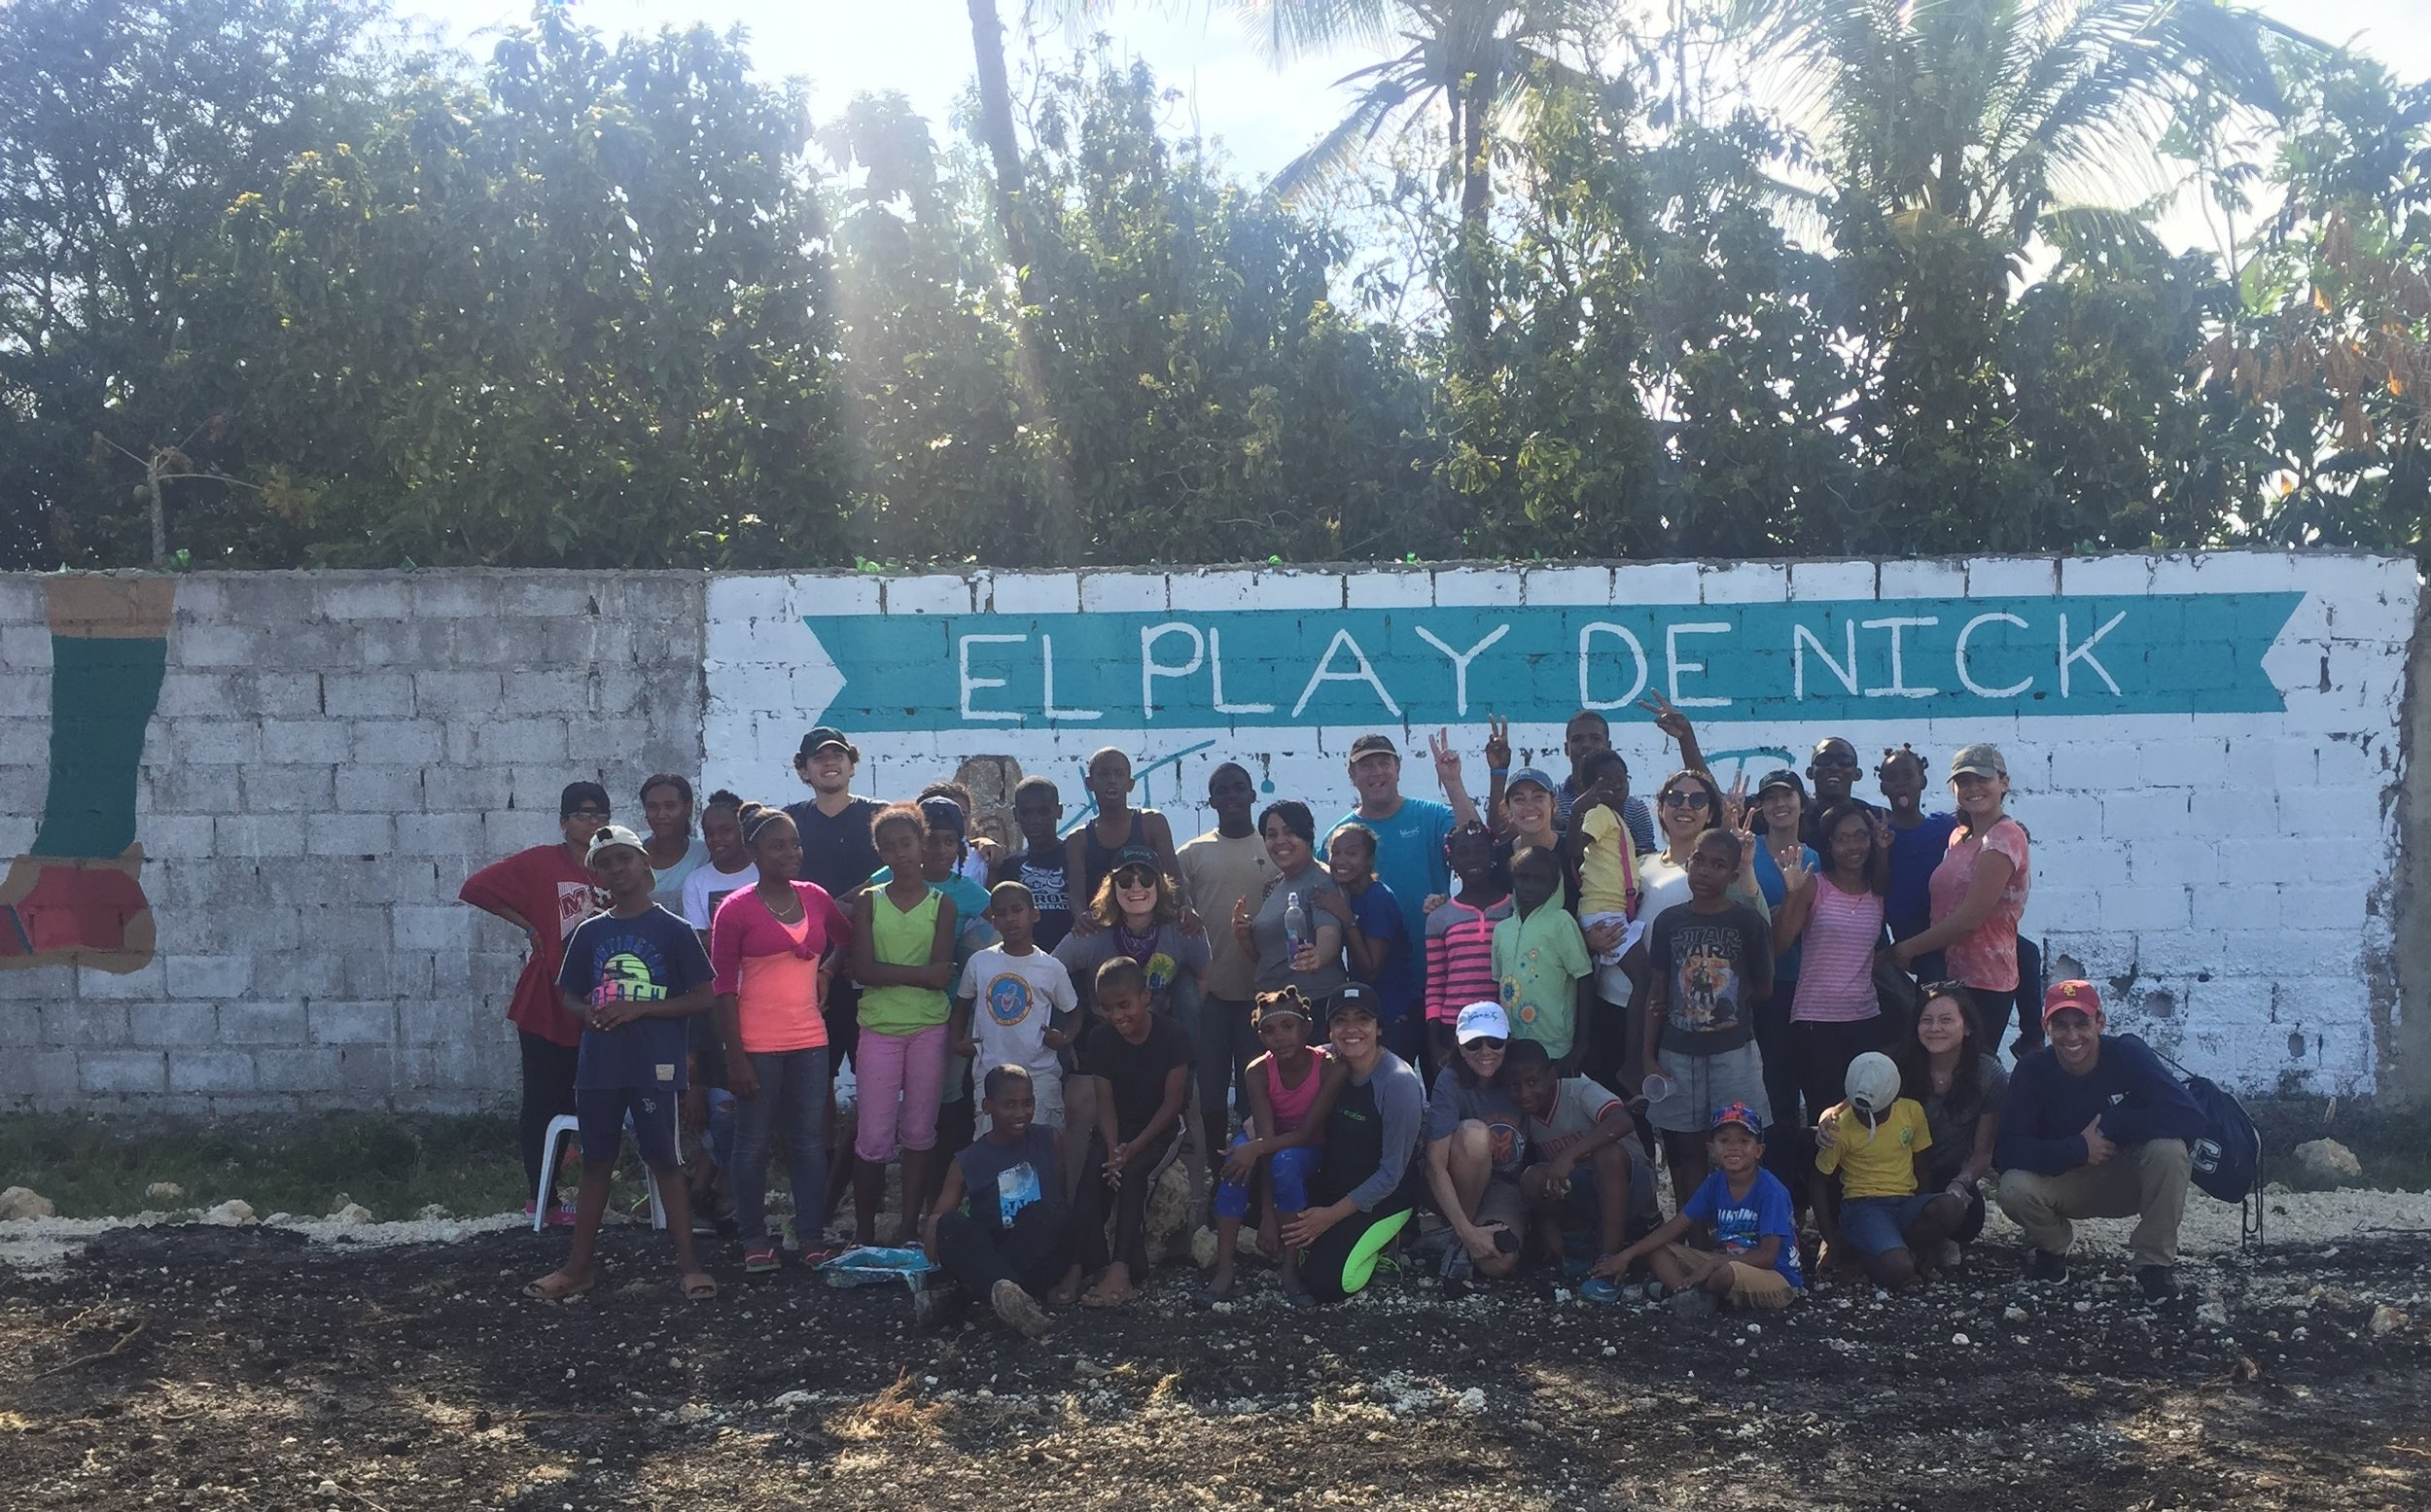 The Remar Orphanage Family Celebrates the finished murals with the Caruso Catholic Center Team